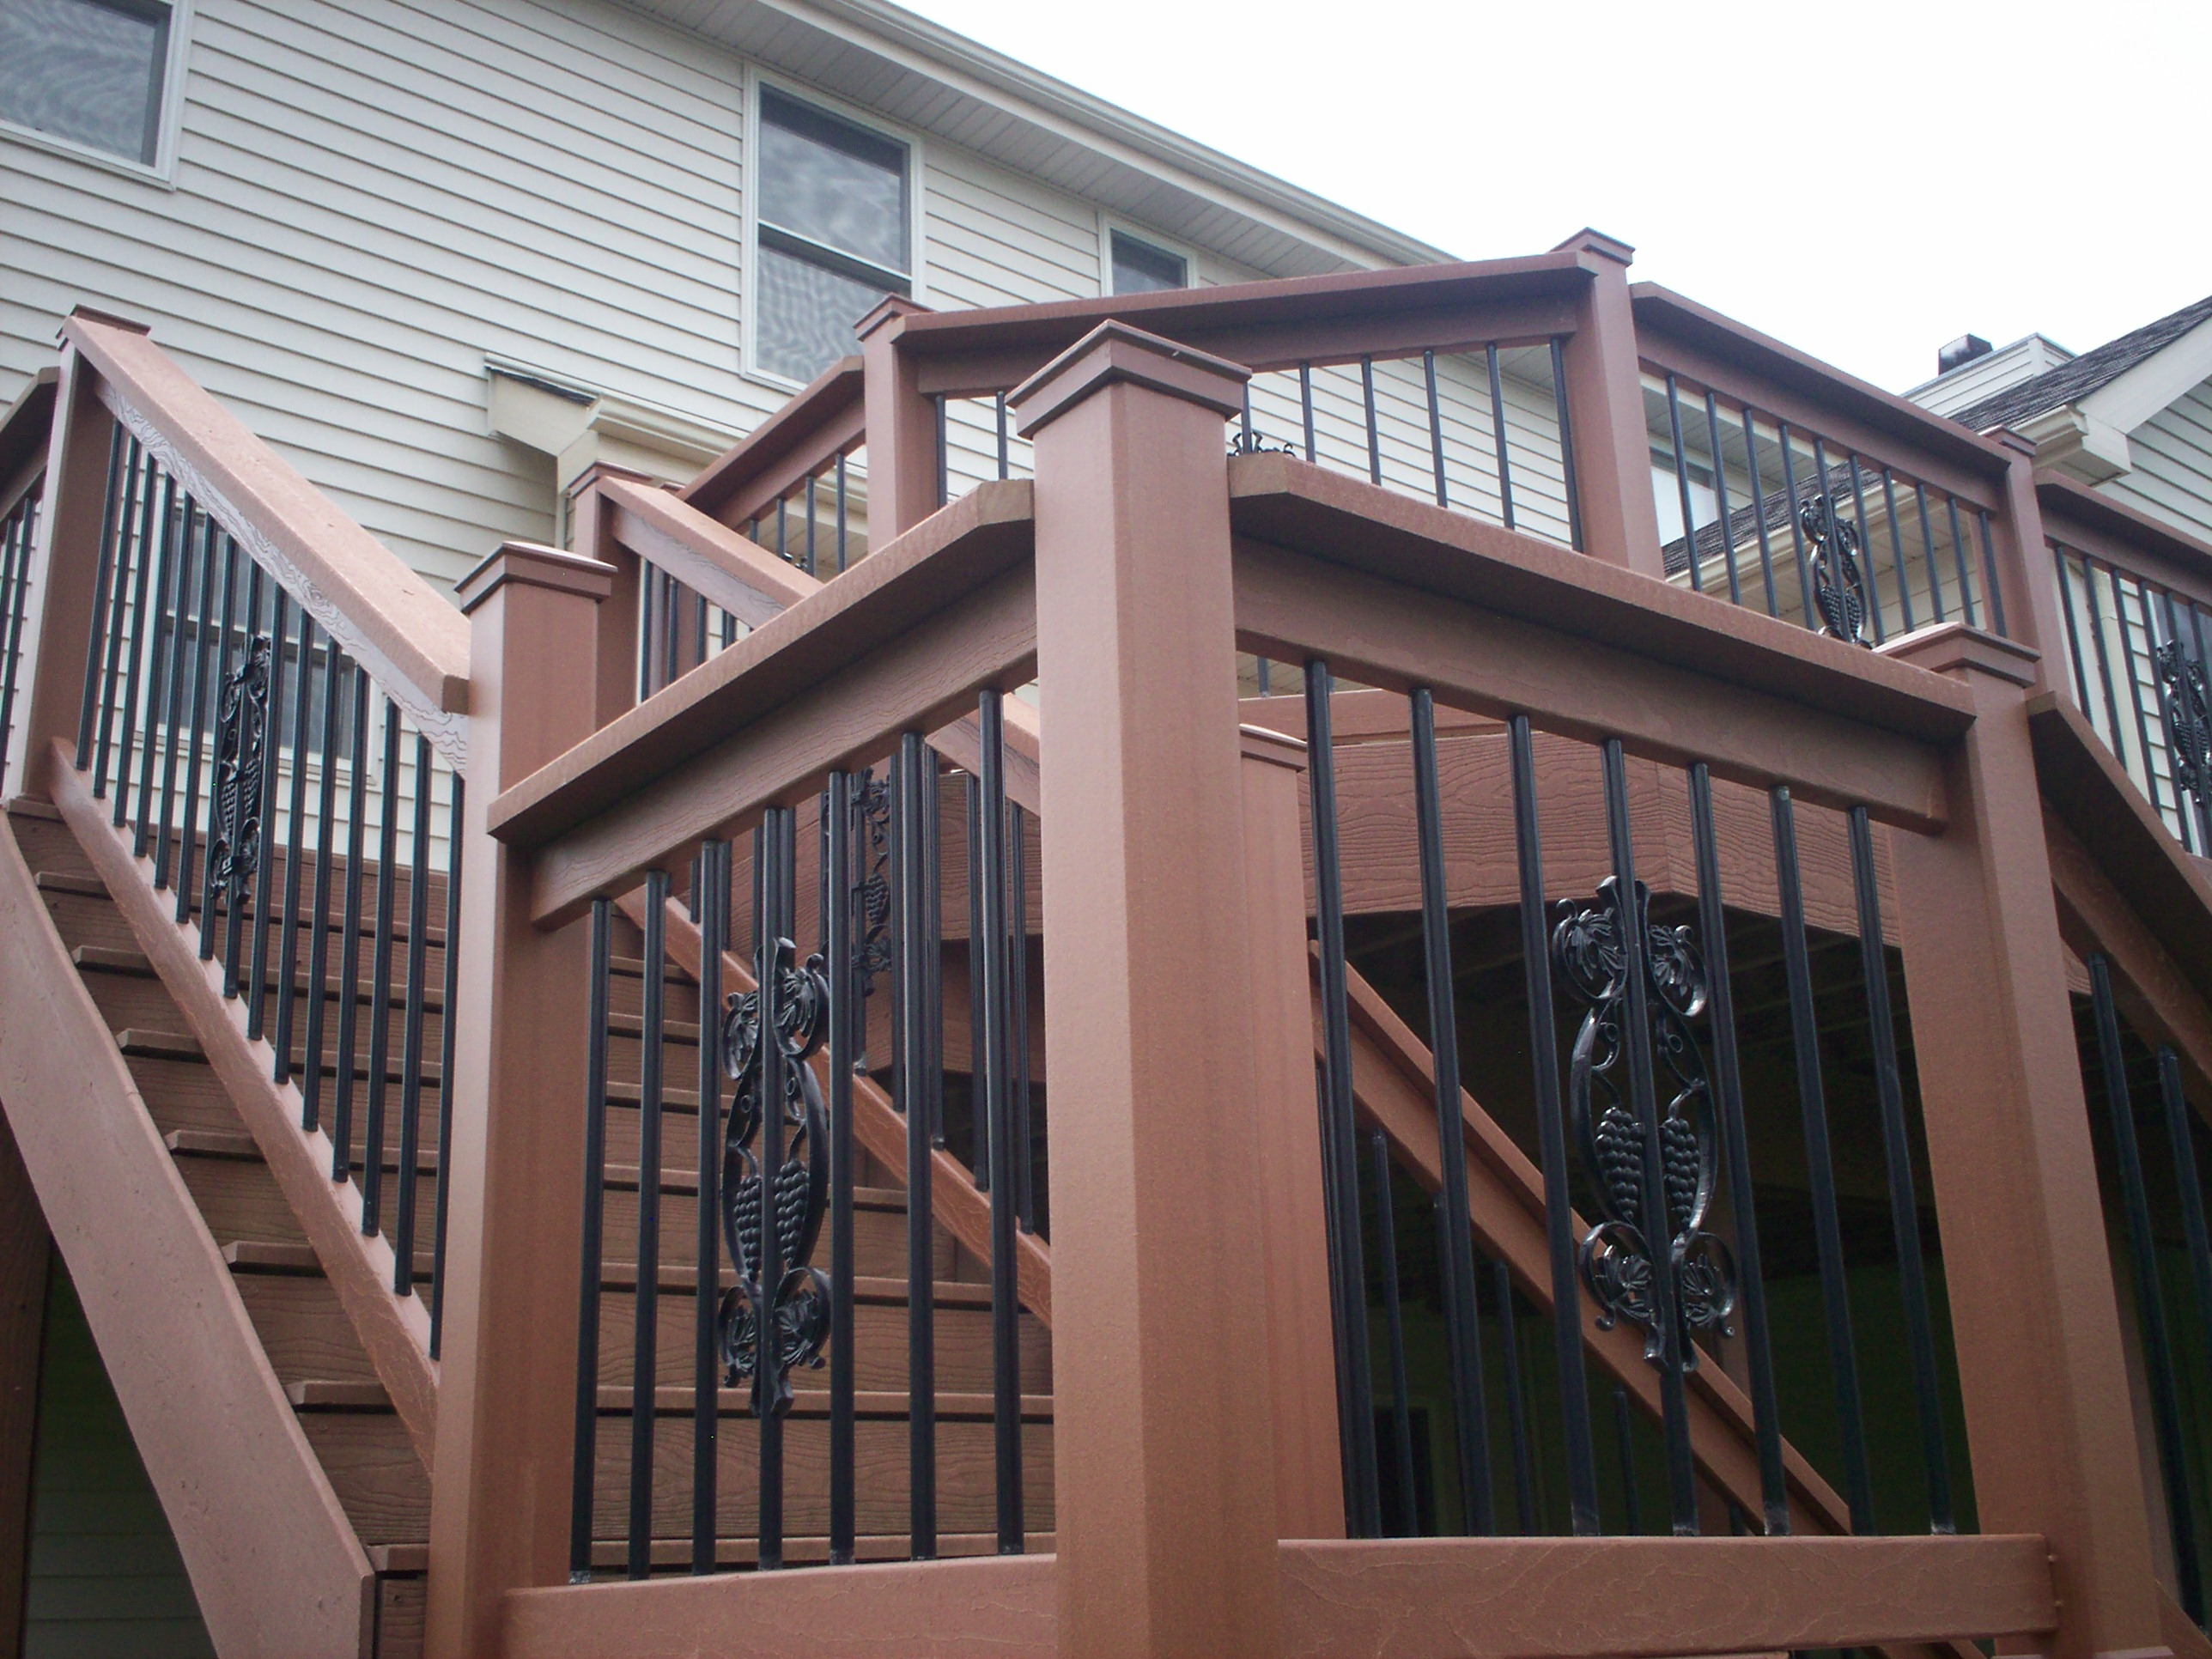 St Louis Deck Design Step It Up With Deck Railing And Stairs | Menards Wrought Iron Railing | Front Porch Railing | Cattail | Spindles | Fence | Balcony